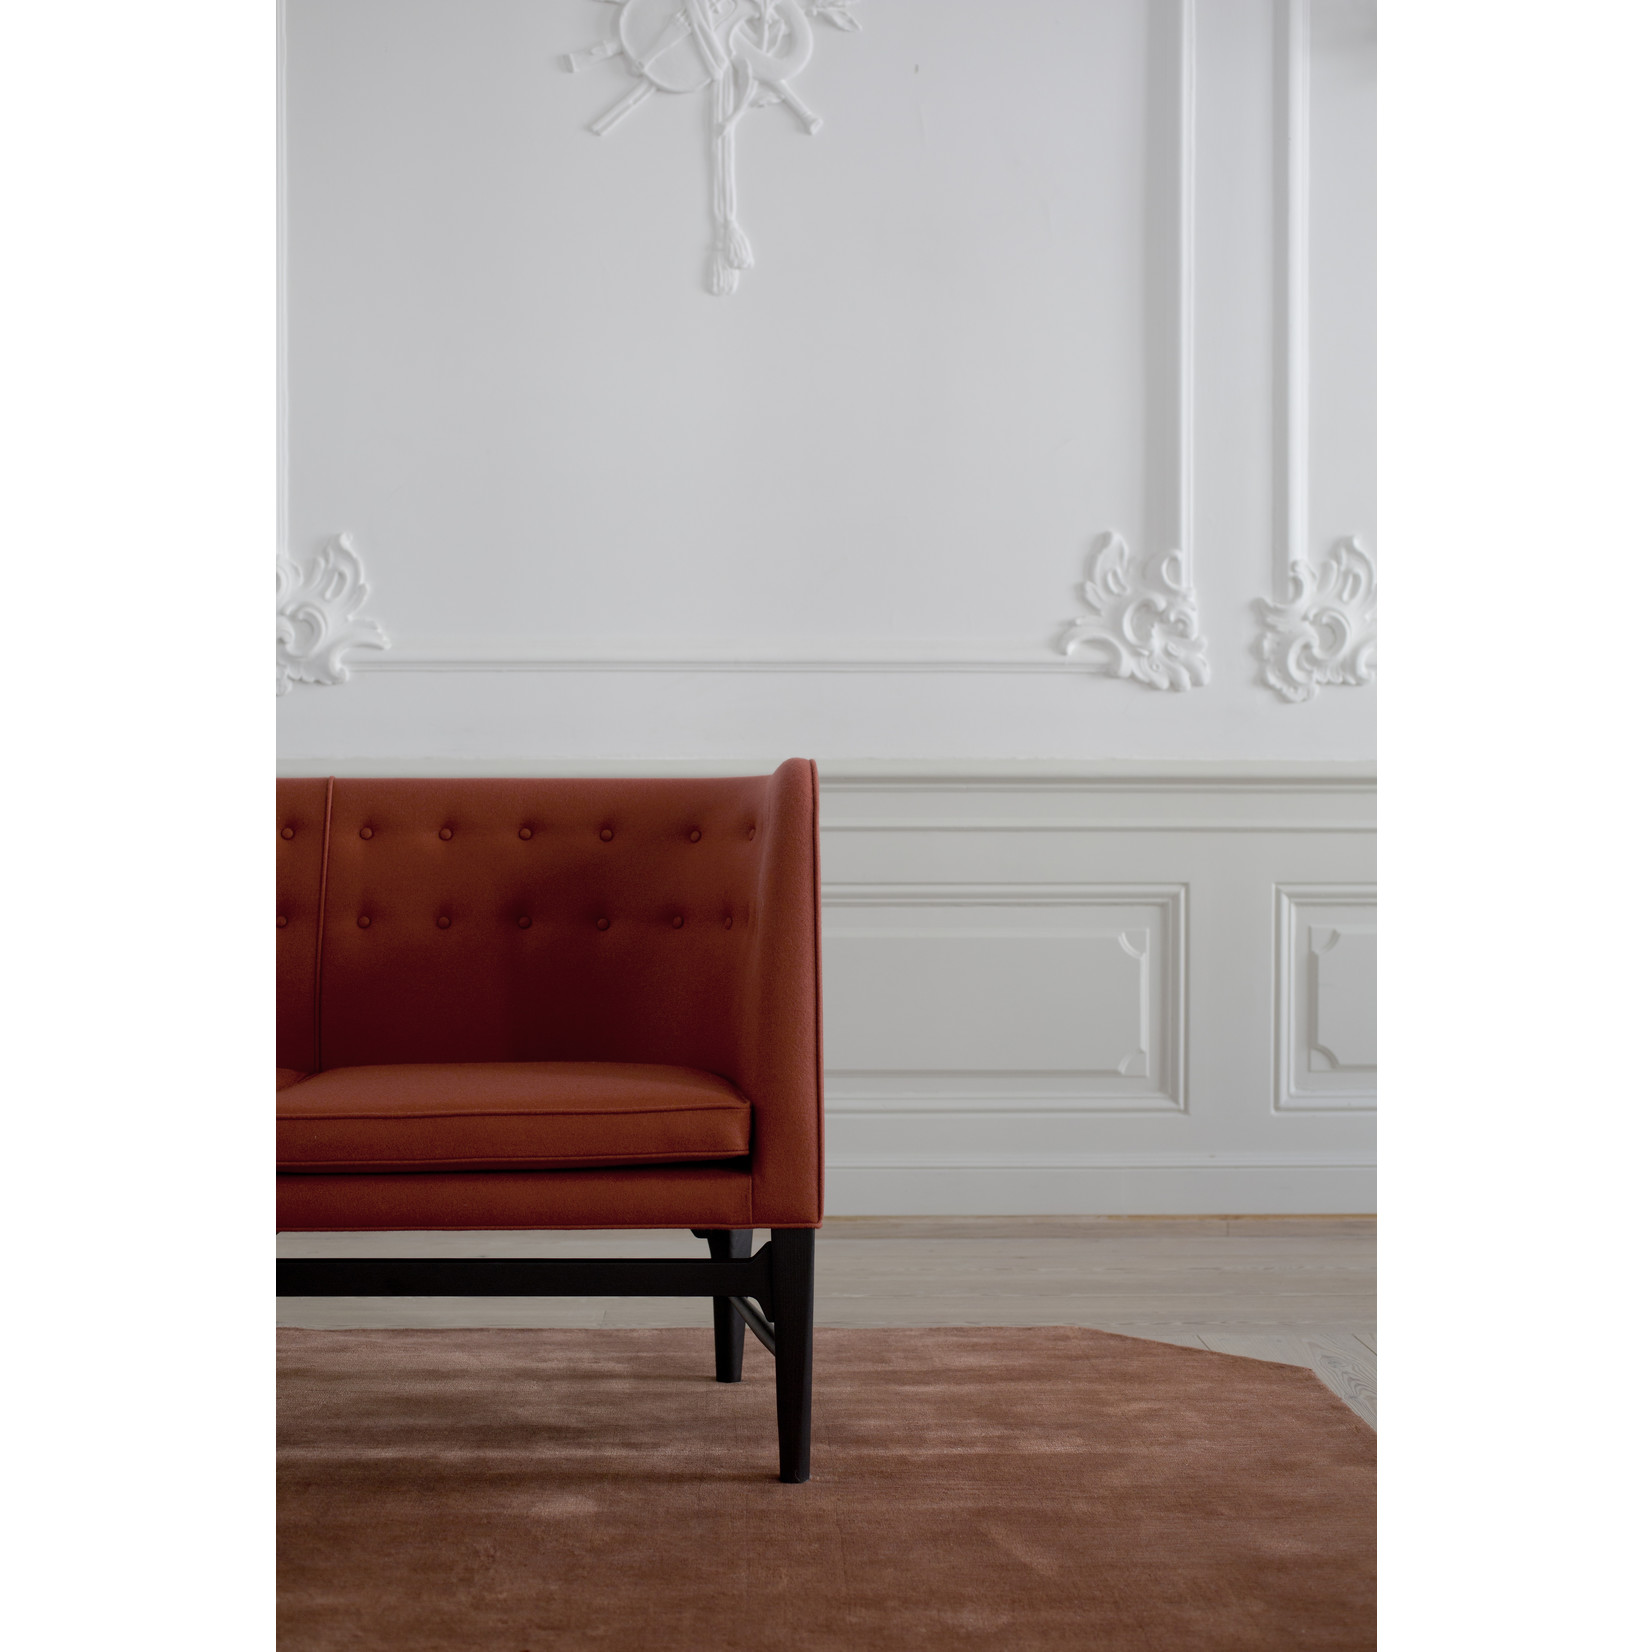 &Tradition The Moor AP8 | Red Heather 300x300cm